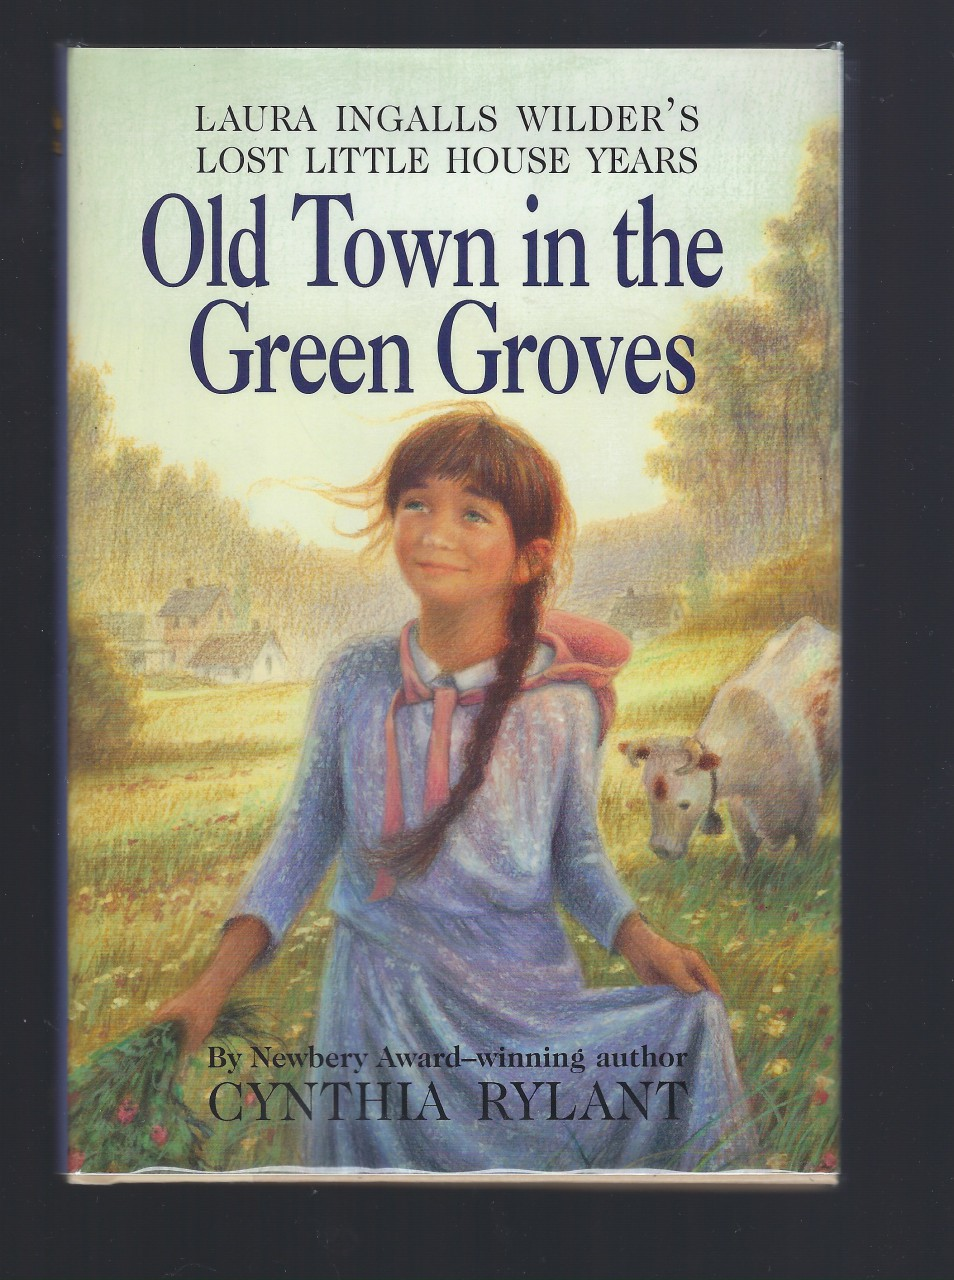 Old Town in the Green Groves (First Printing): Laura Ingalls Wilder's Lost Little House Years, Cynthia Rylant; Illustrator-Jim Lamarche